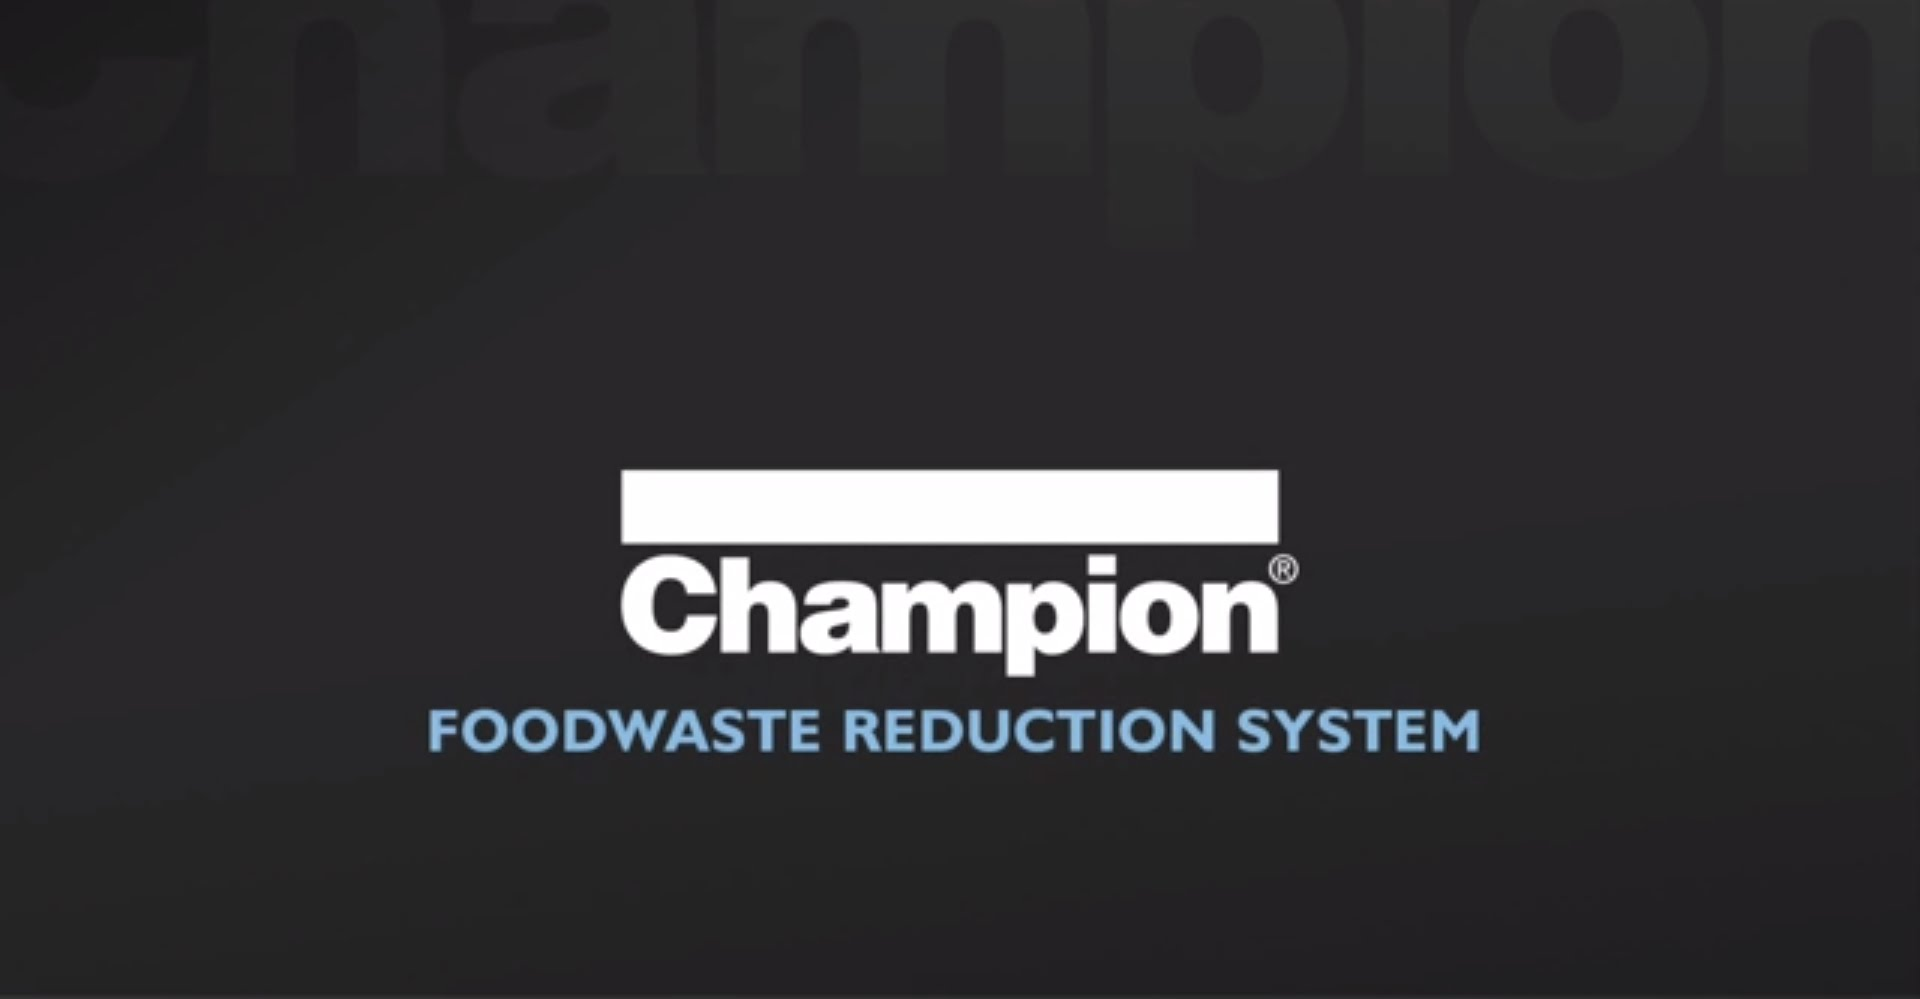 Champion – Foodwaste Reduction System